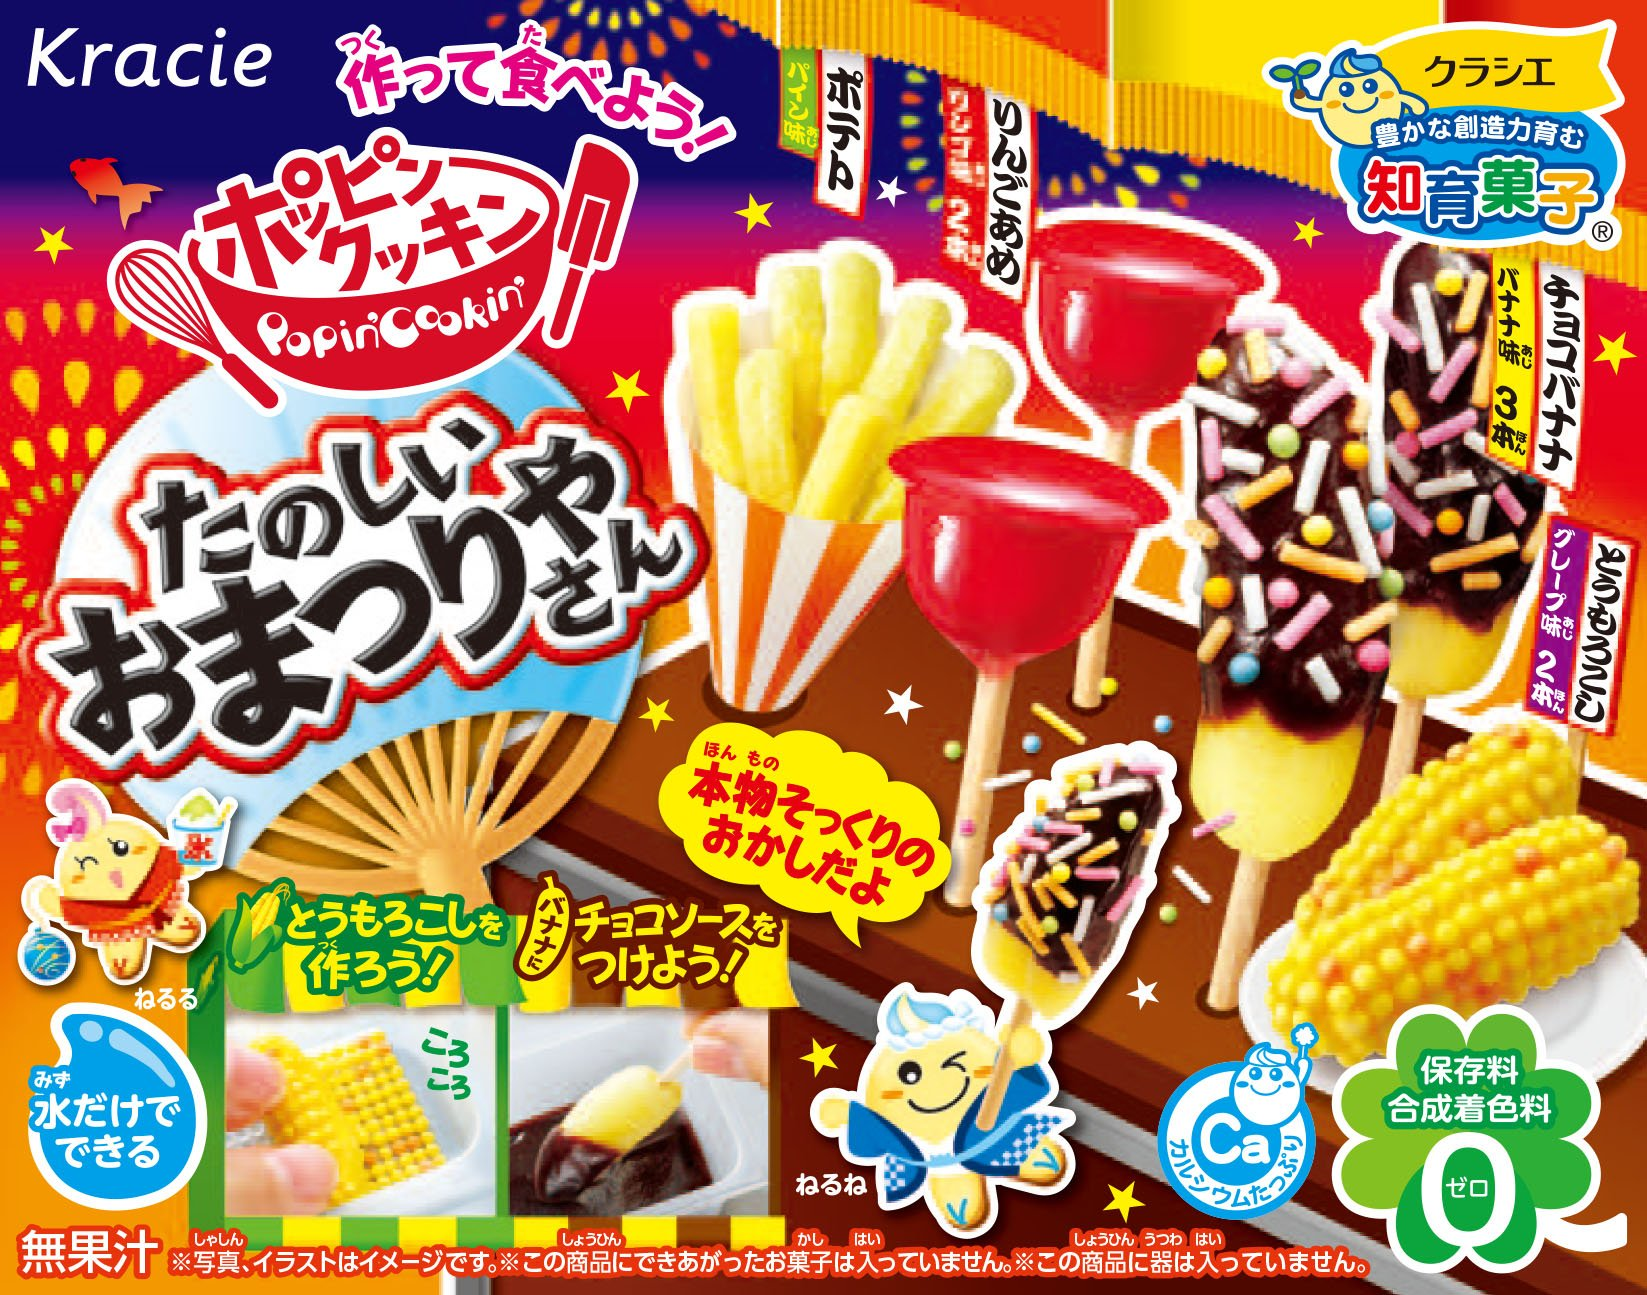 Popin cookin amazon - Popin Cookin Japanese Festival Diy Candy Kracie